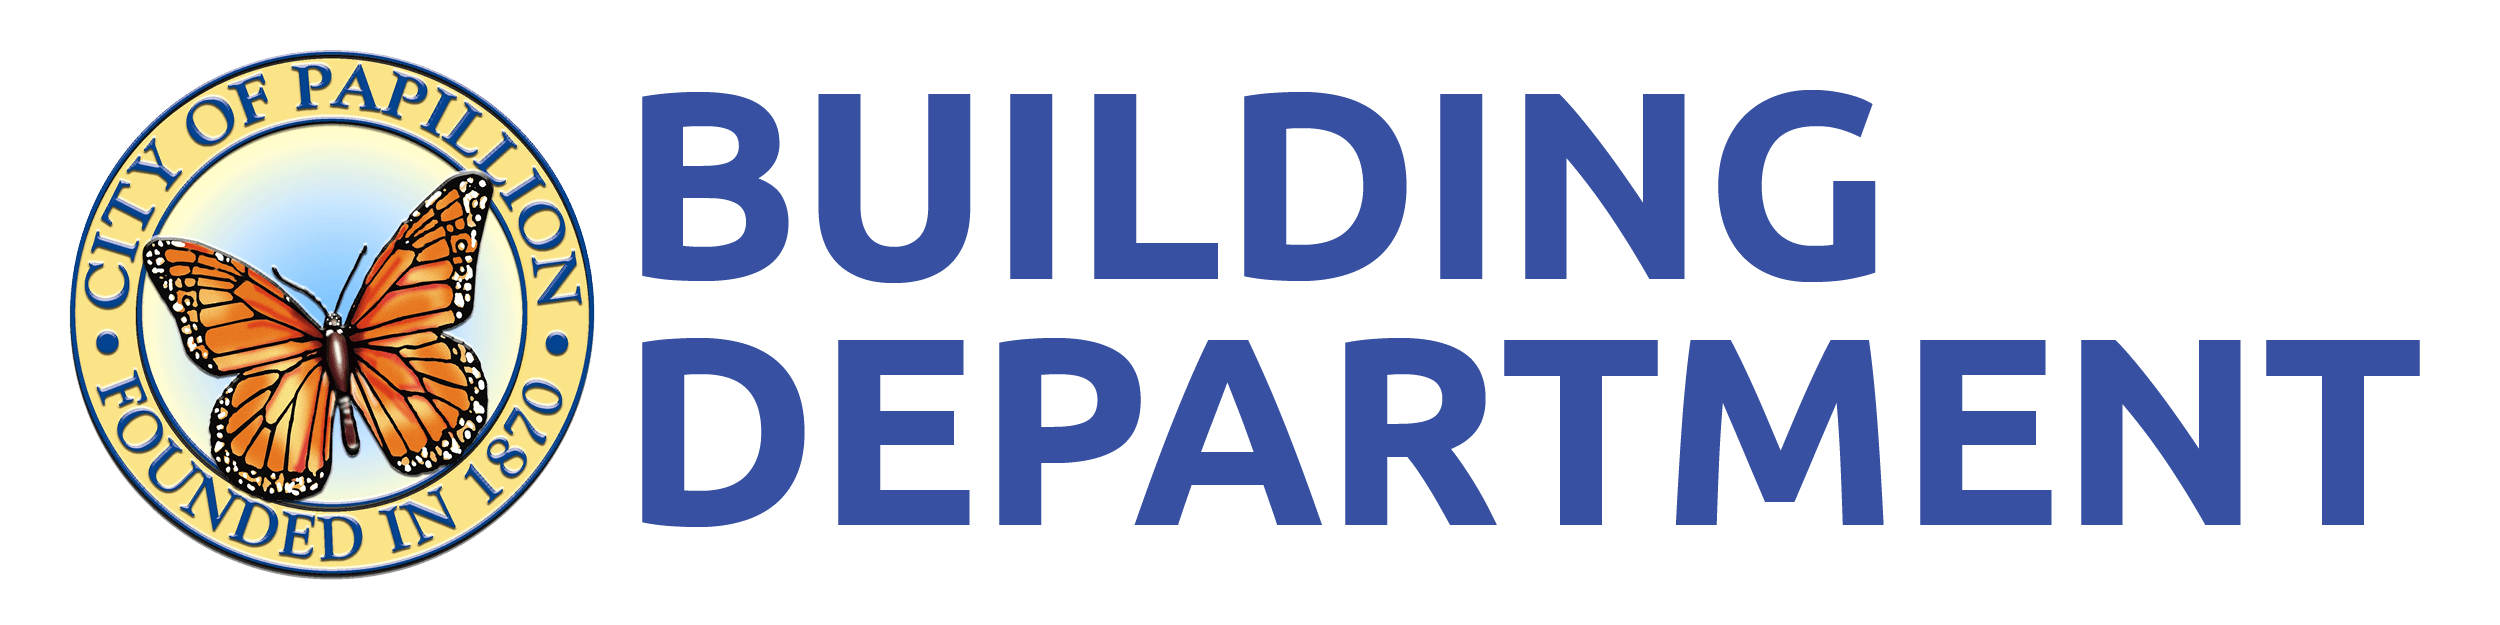 Building Department logo